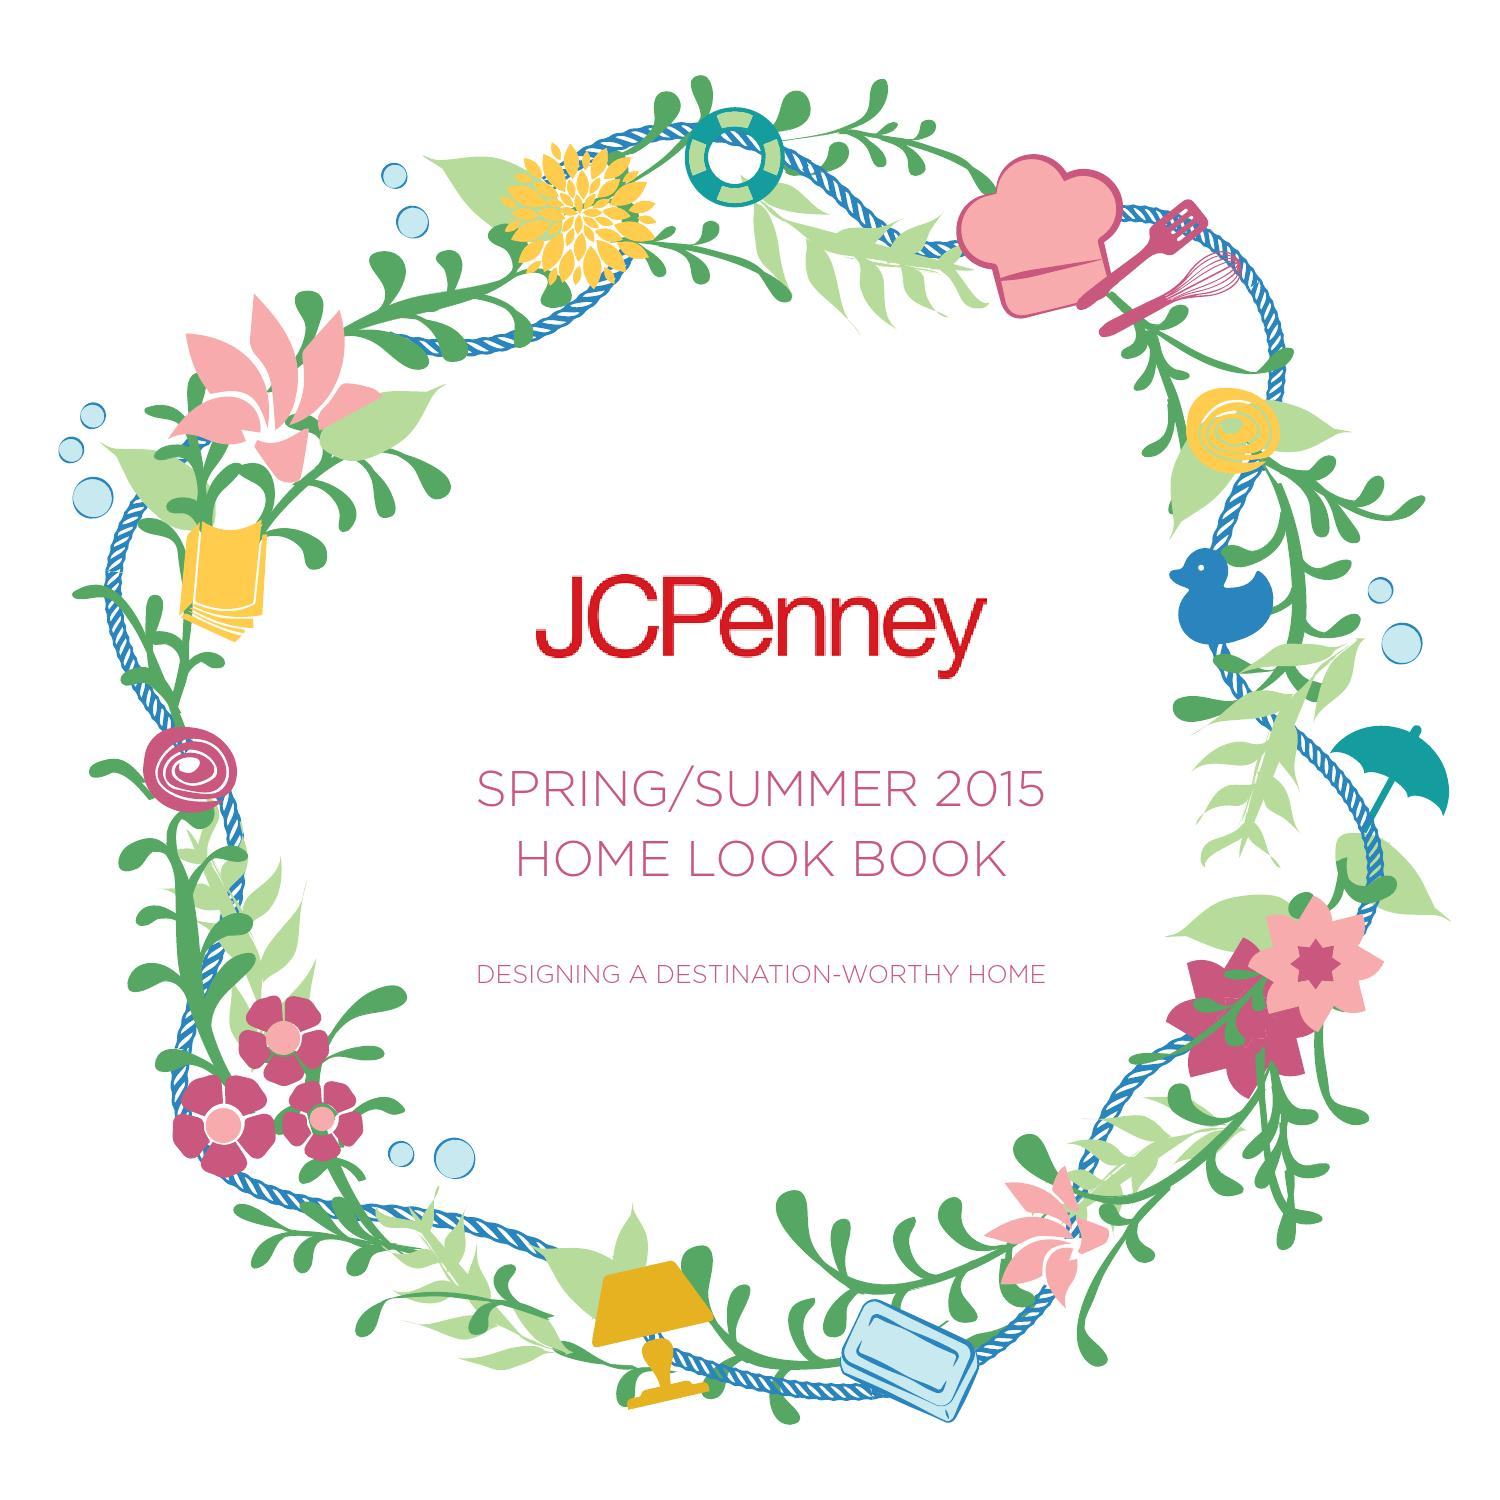 Jcpennys Home: JCPenney Home Spring Summer 2015 Look Book By JCPenney